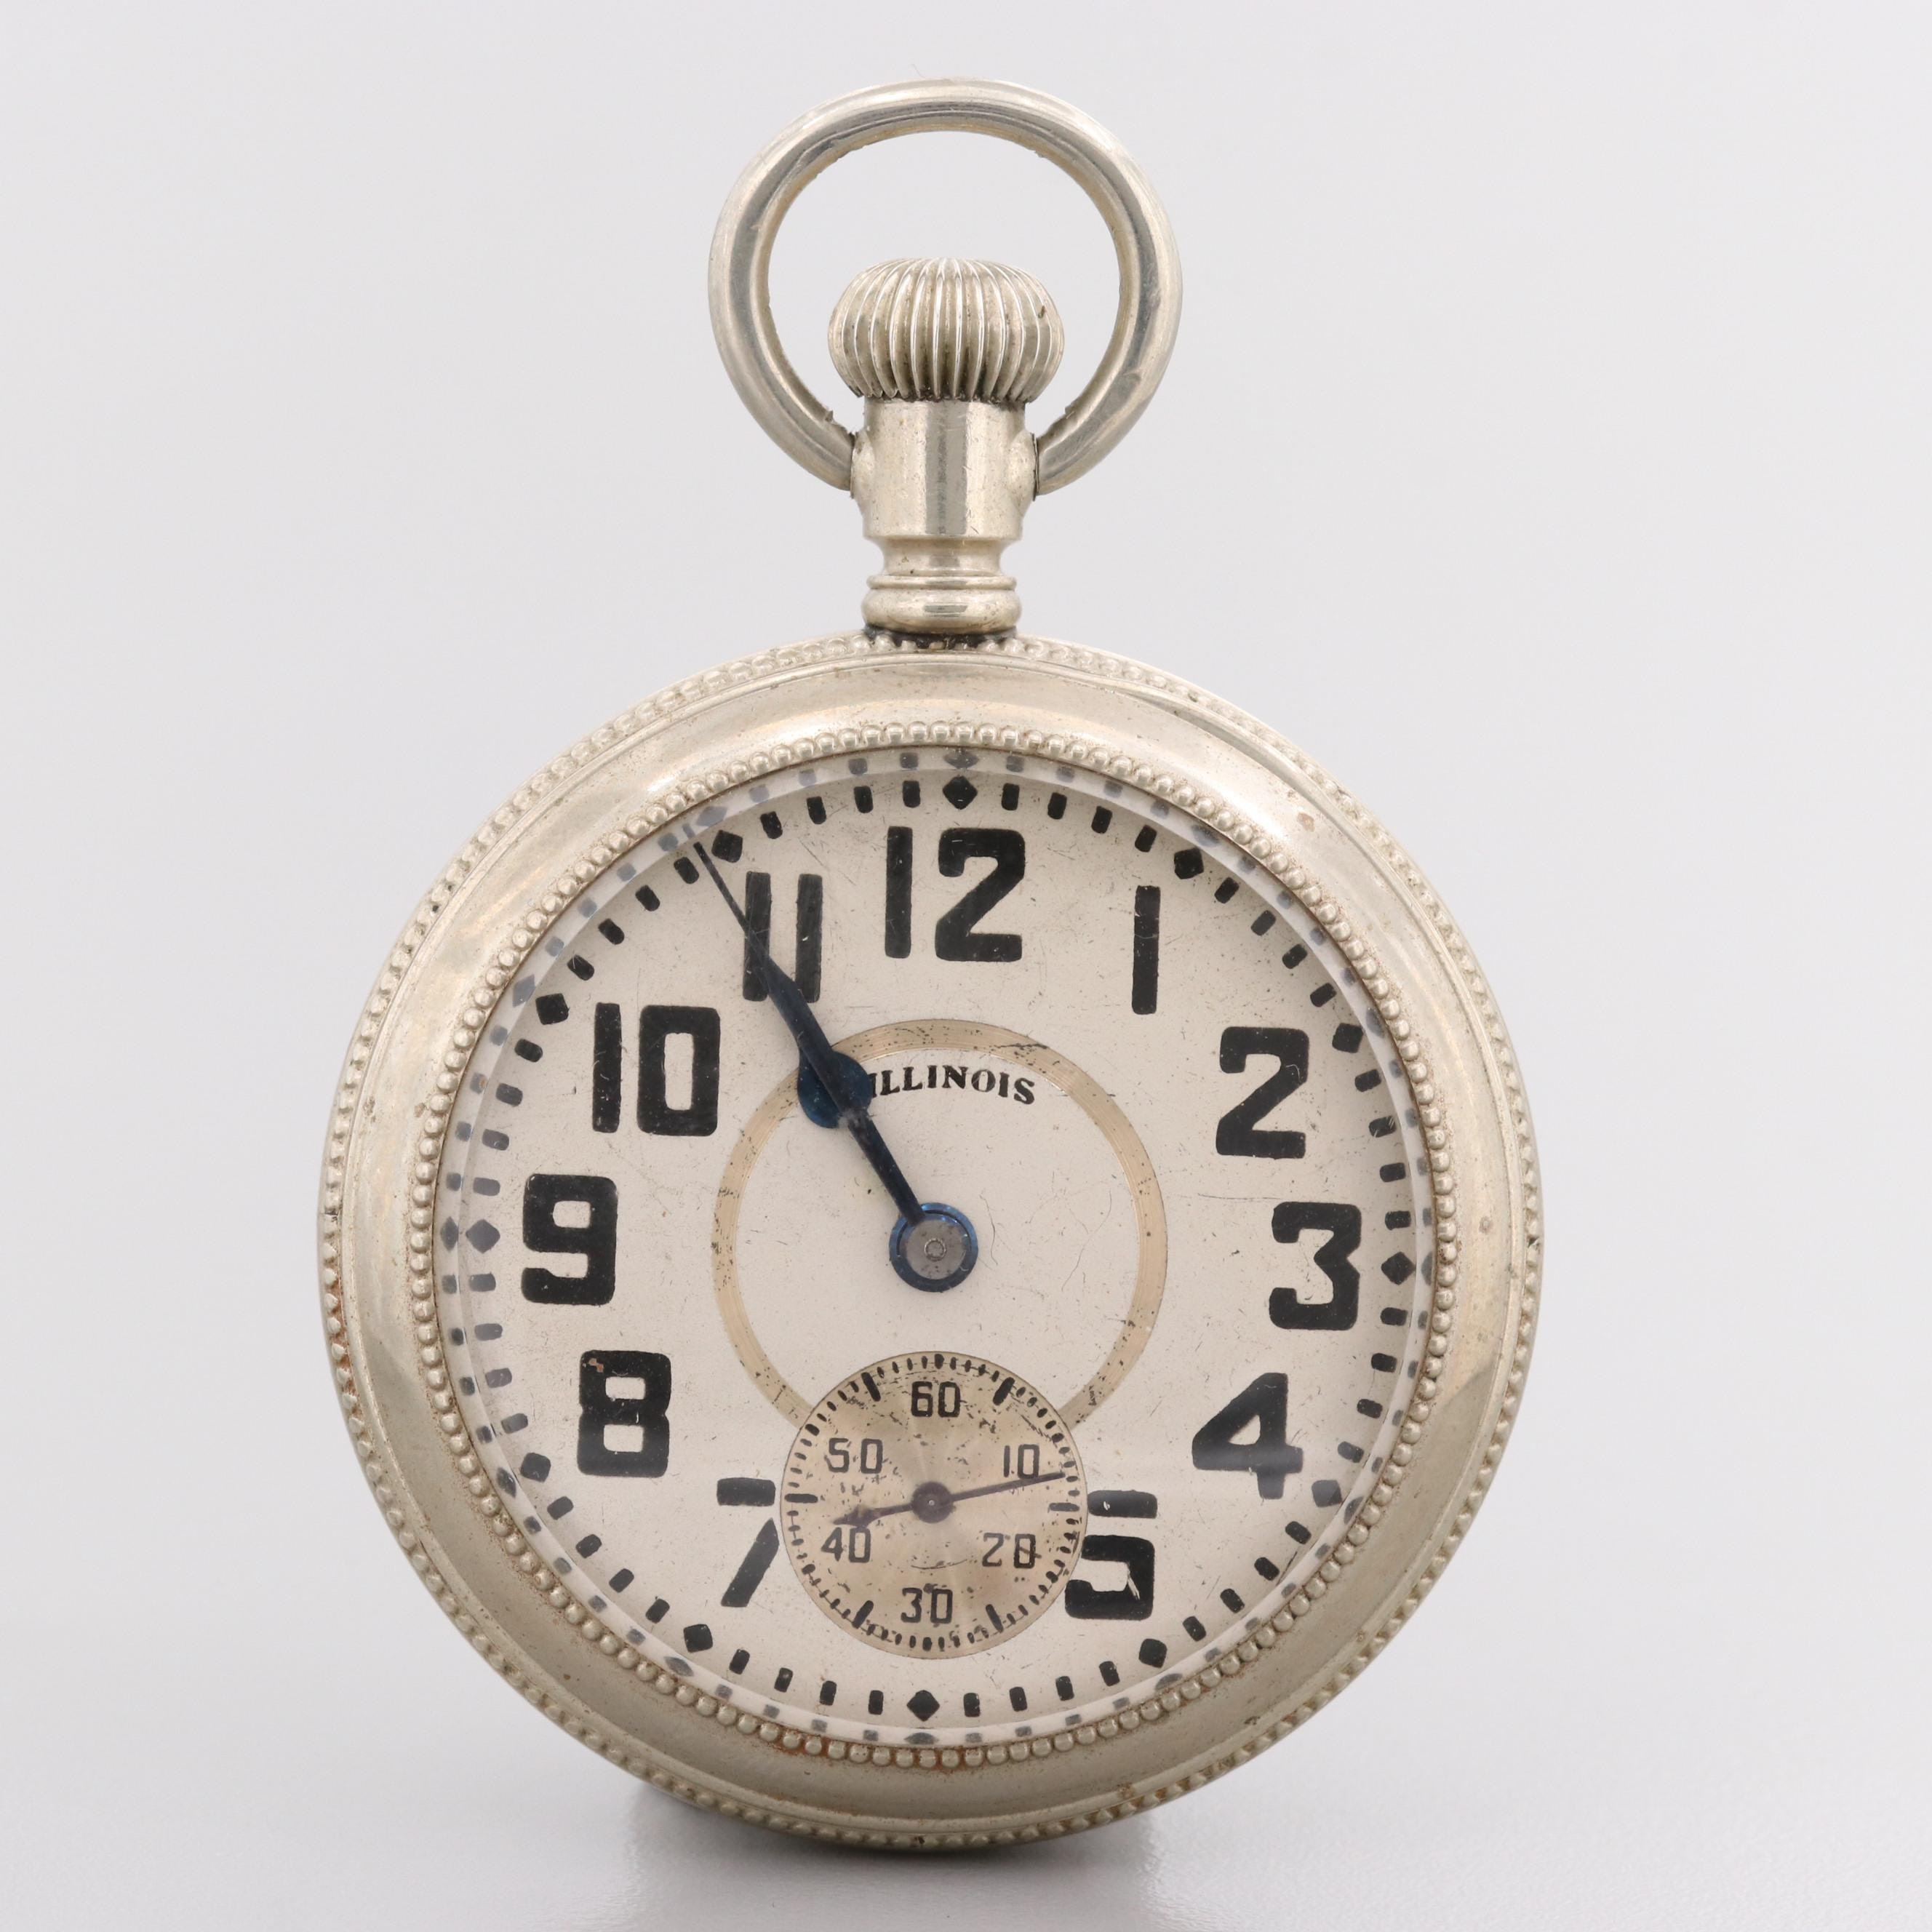 Illinois Bunn Special Pocket Watch With Display Back, 1923